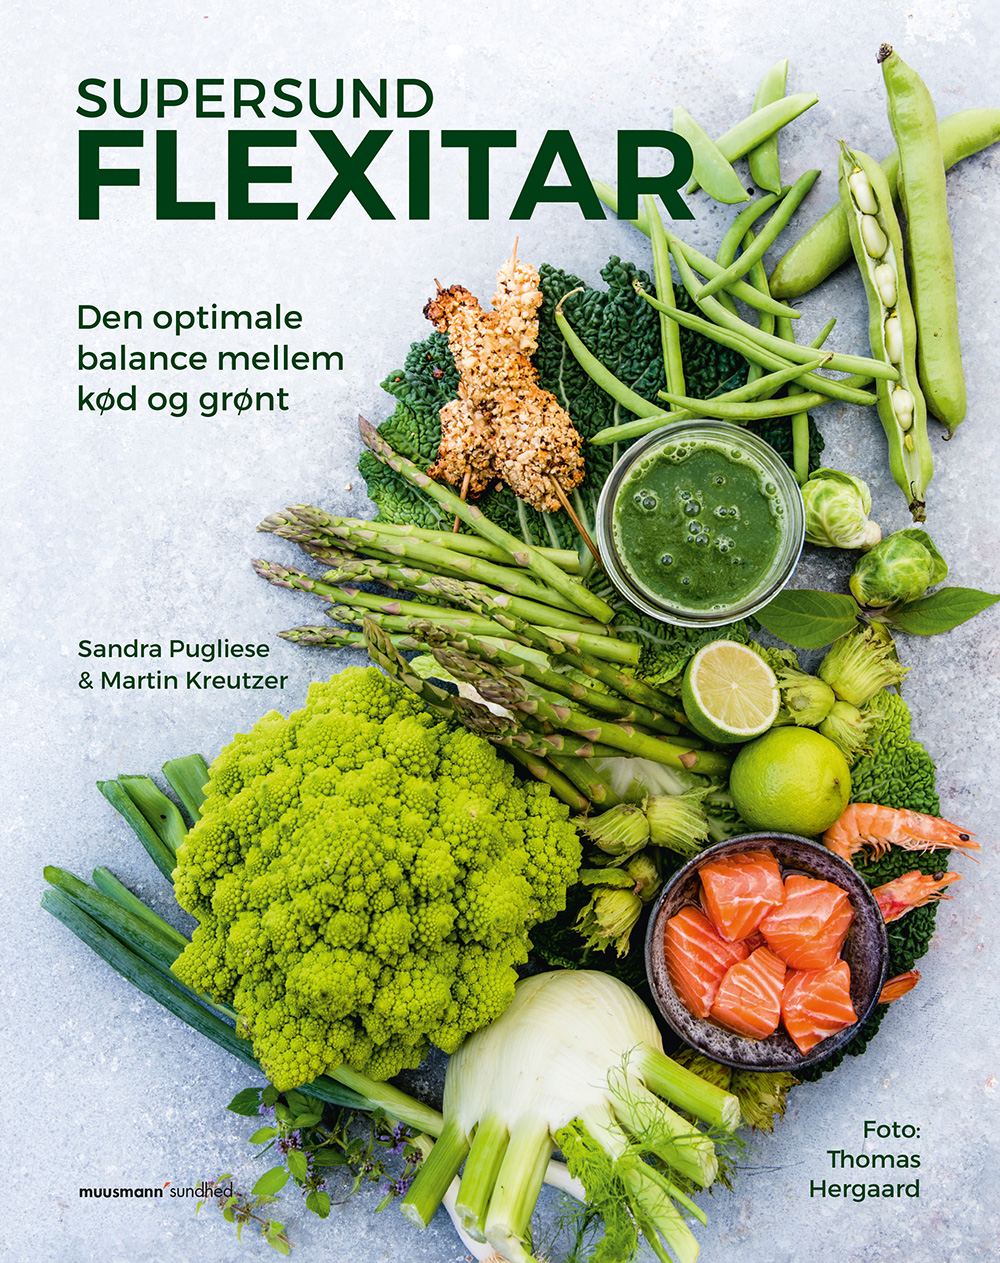 Supersund flexitar